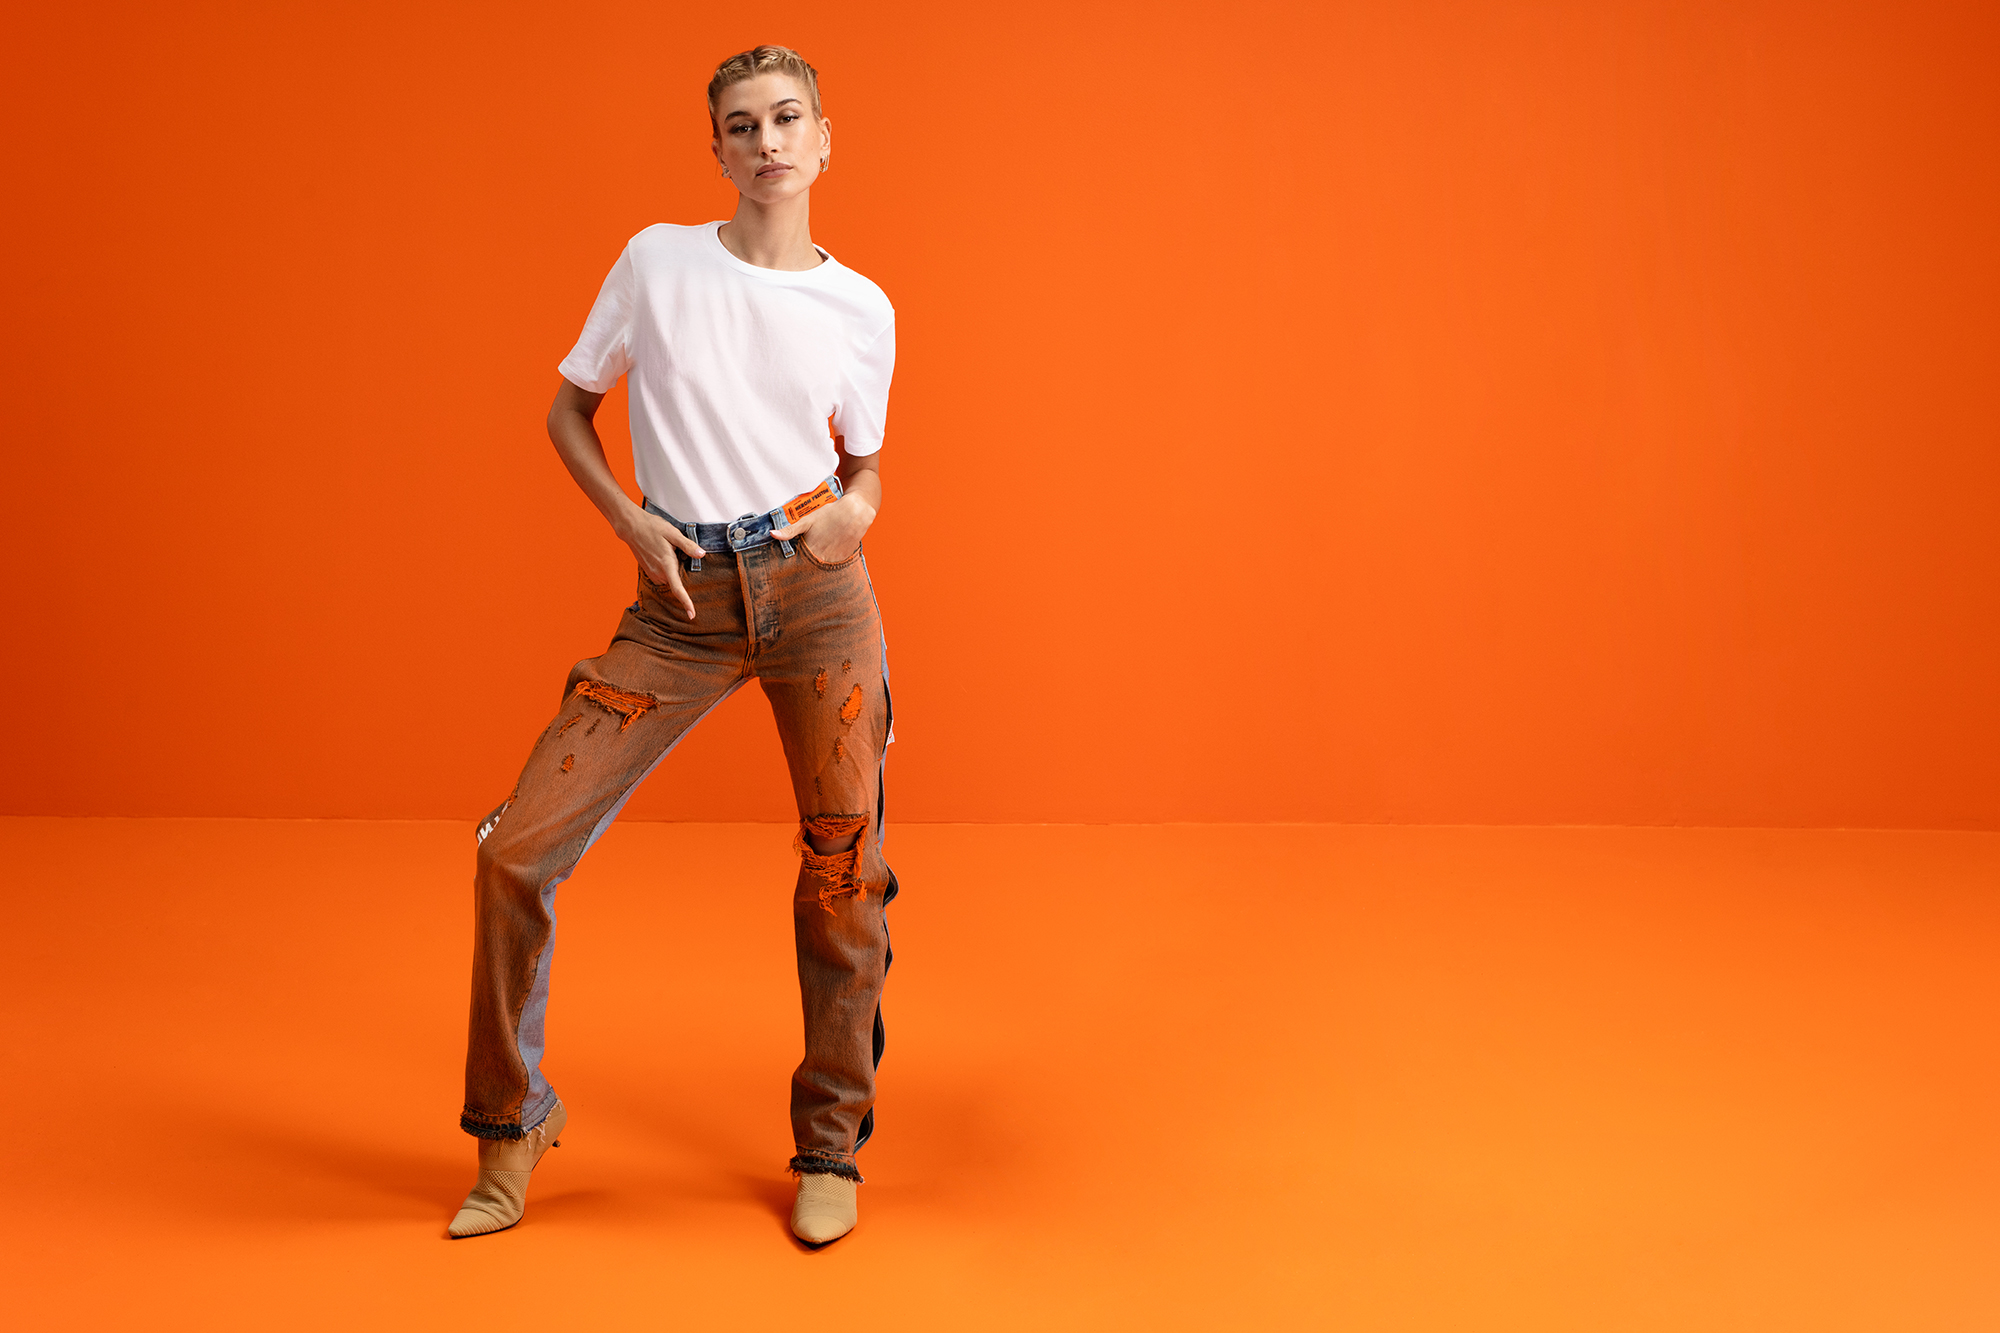 Hailey Bieber Levi's x Heron Preston Denim Campaign - Hailey Bieber